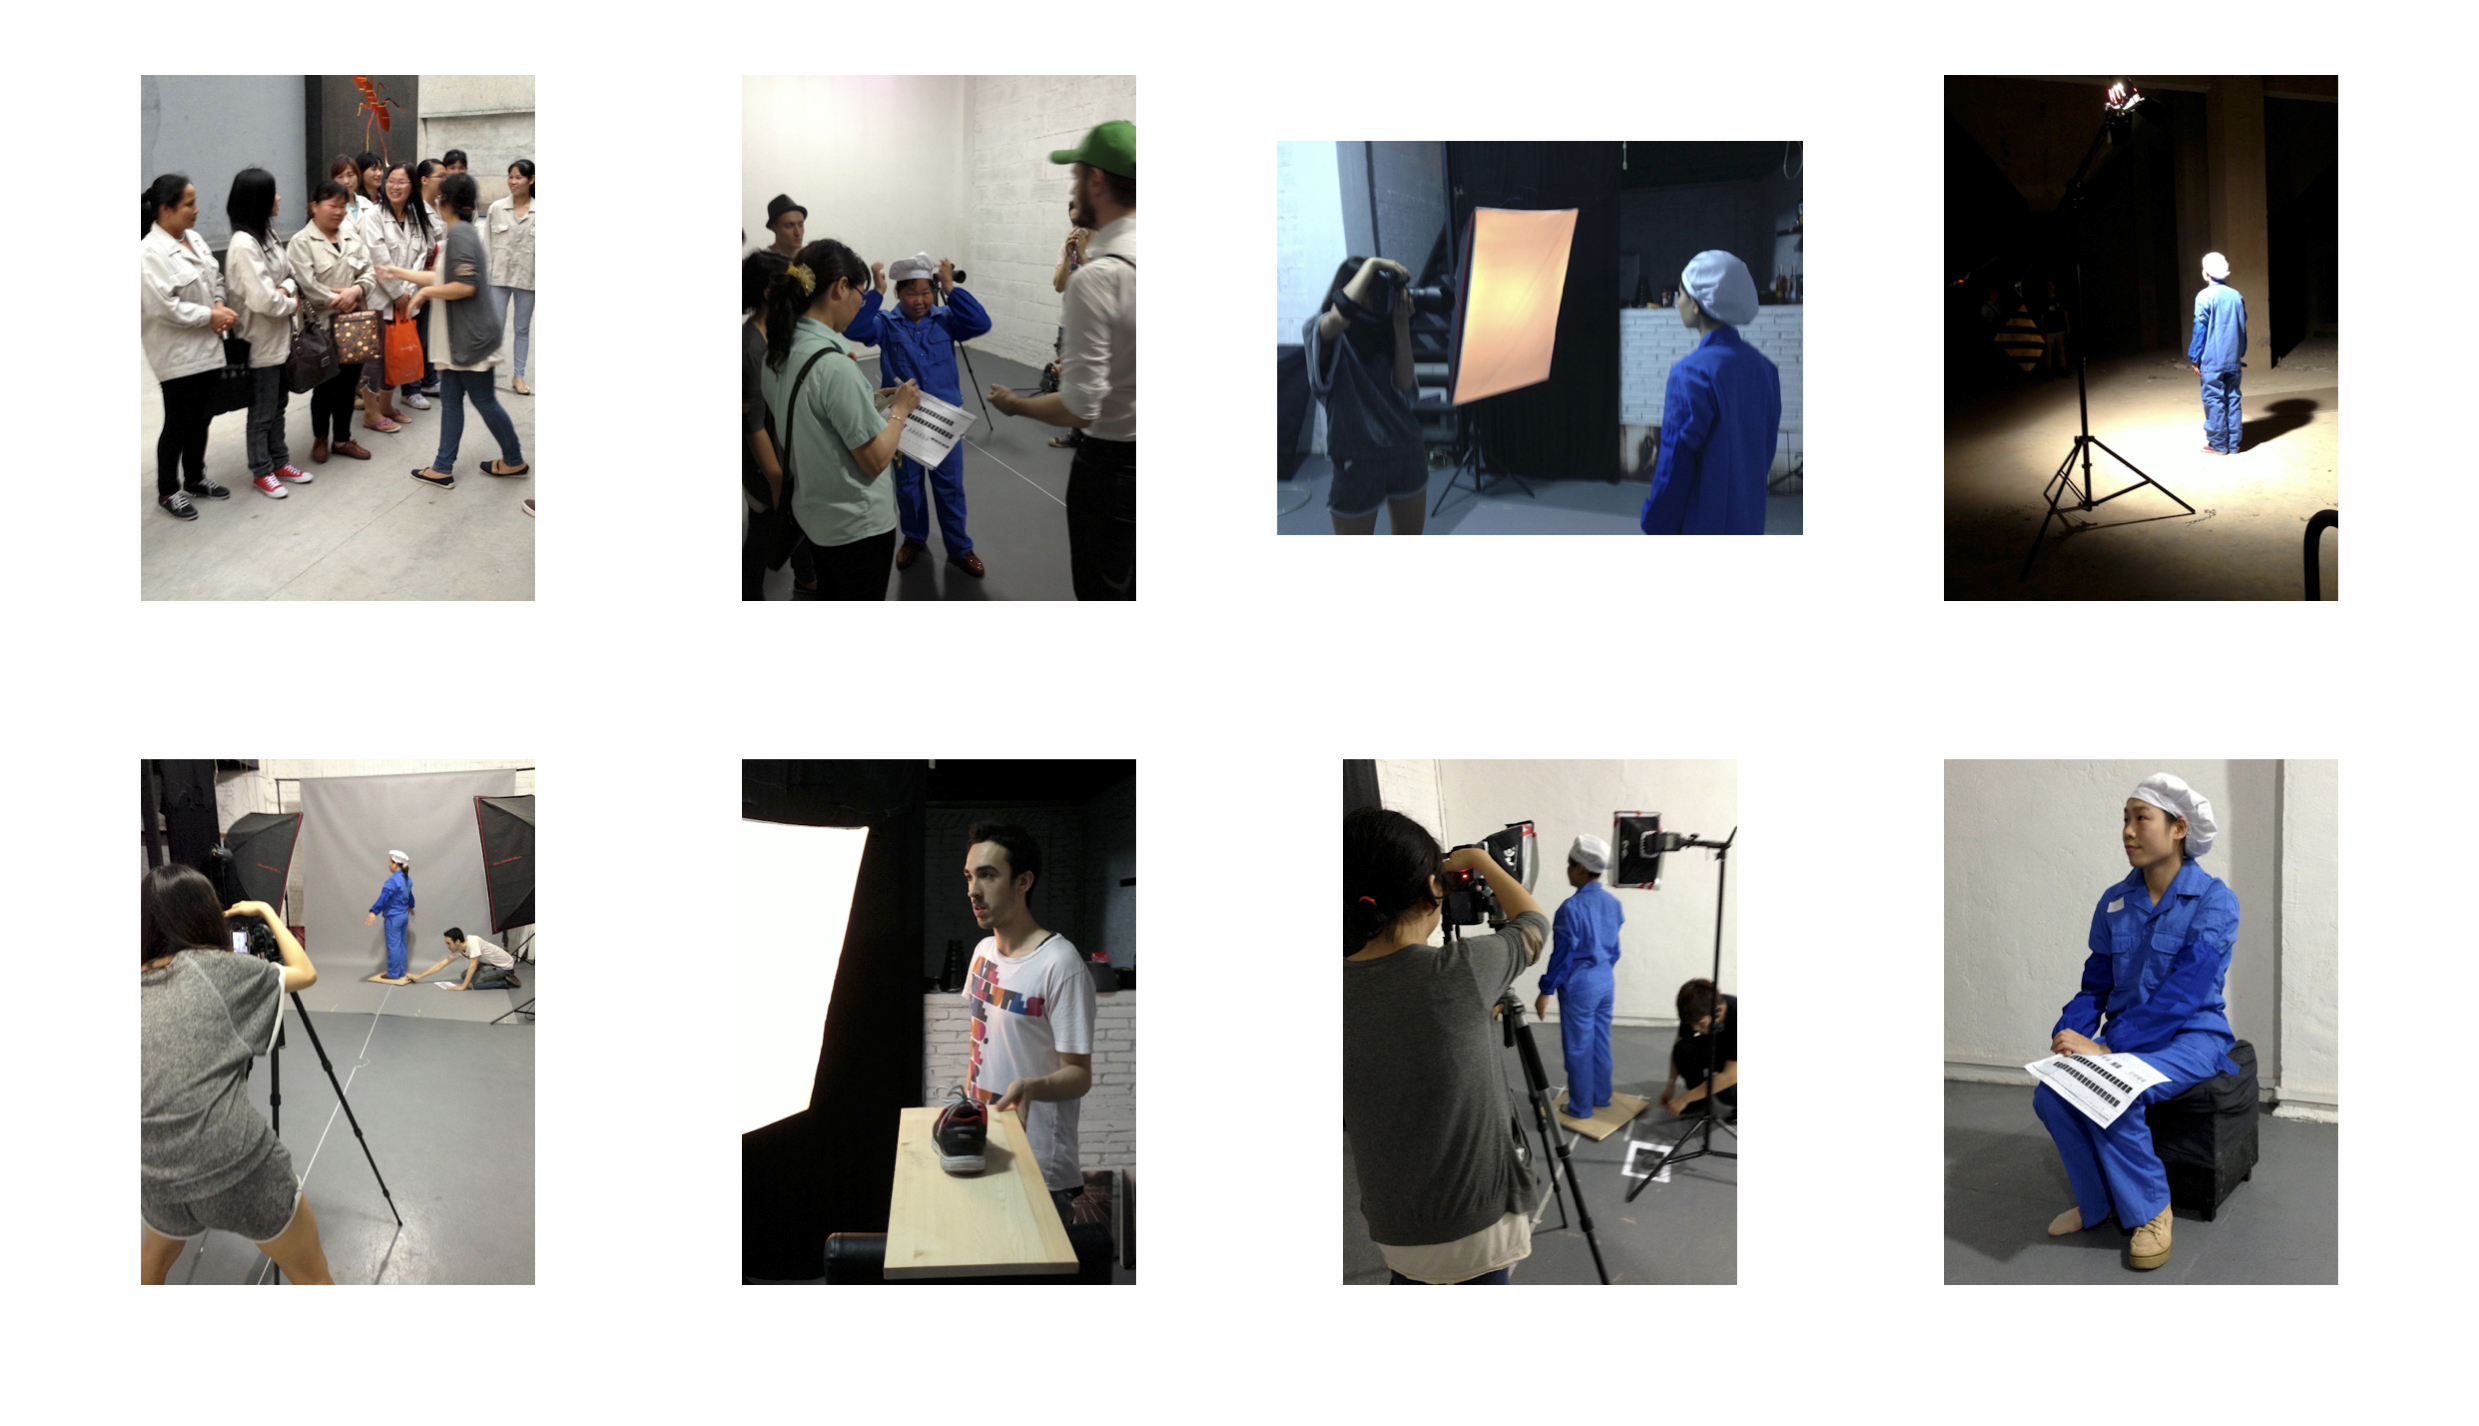 Snapshots from John Gerrard directing proceedings in Guangzhou at ITR Space.